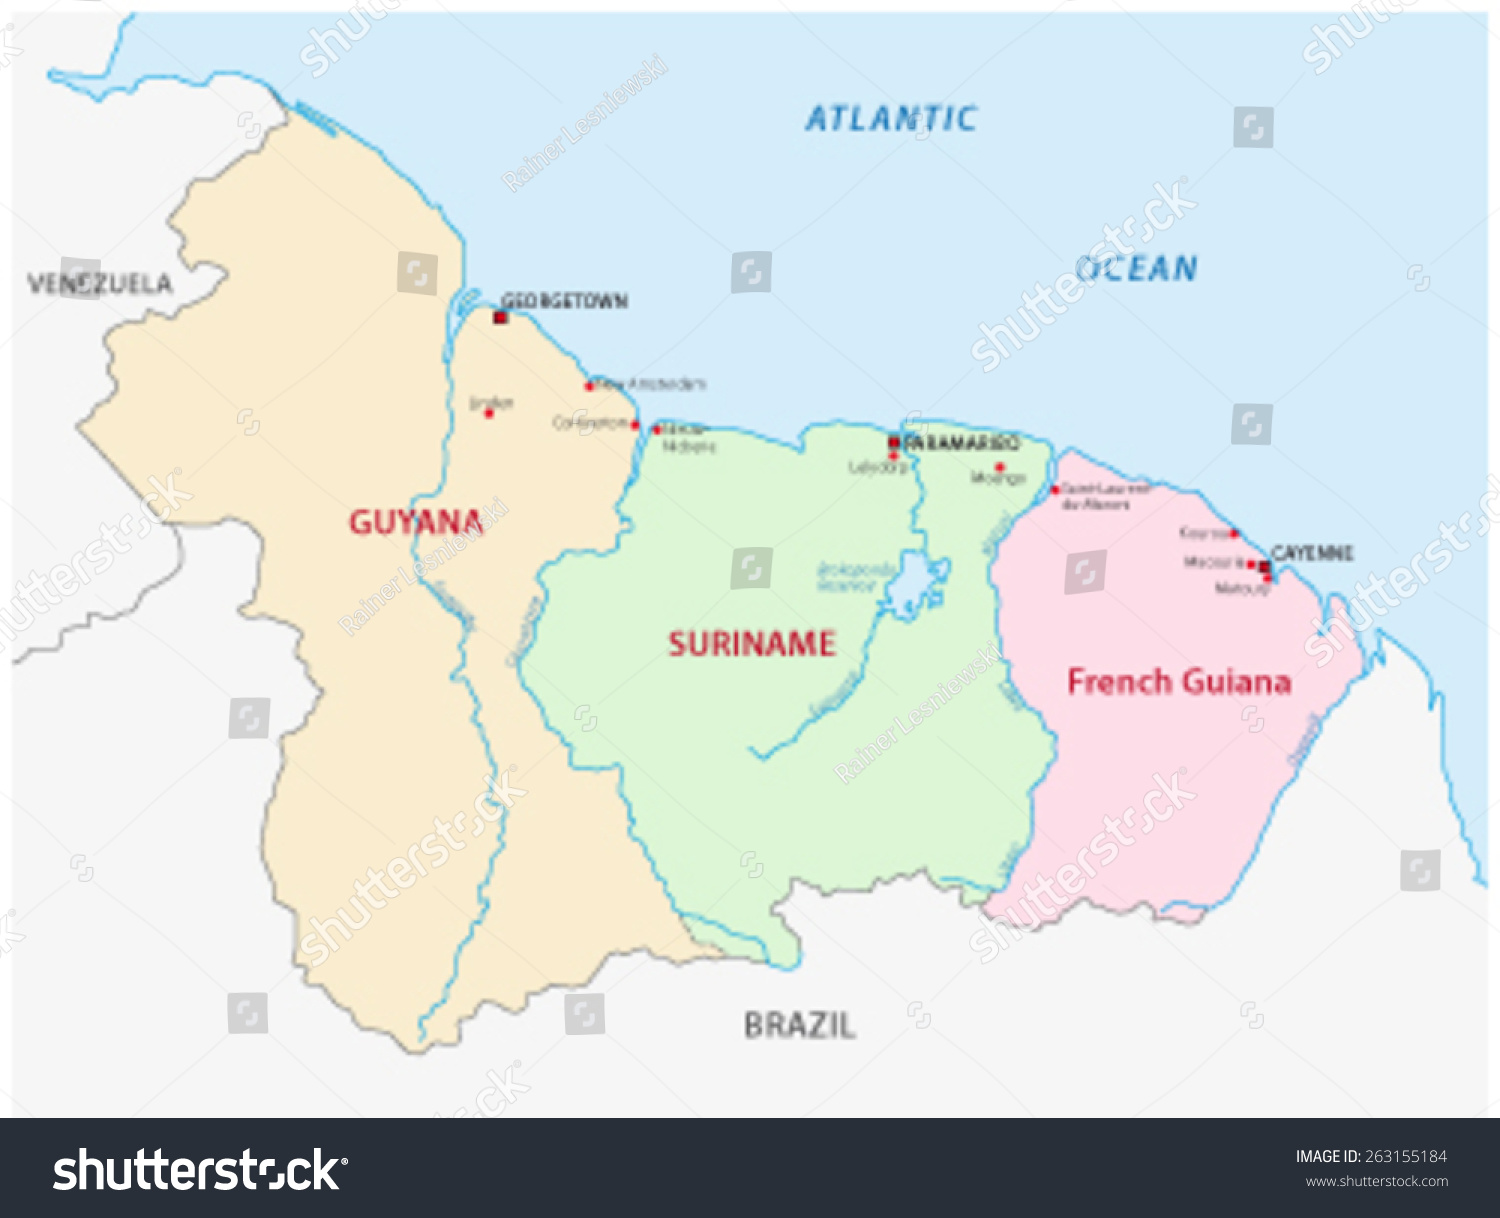 Guyana Suriname French Guiana Map Stock Vector 2018 263155184